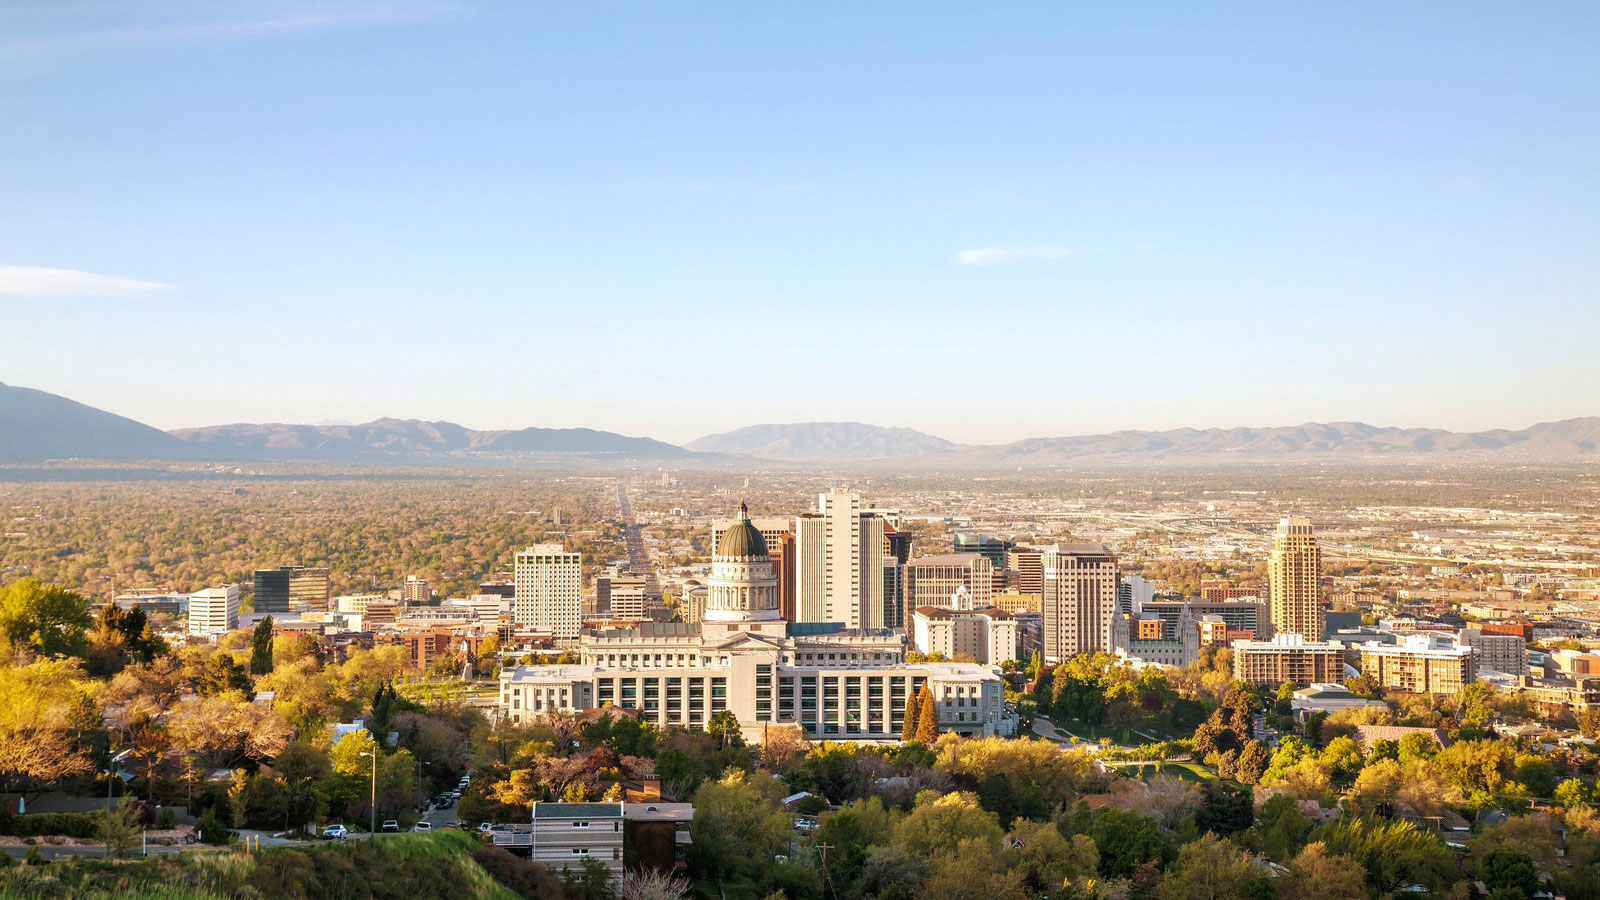 salt-lake-city-utah-tl-XL-BLOG0716.jpg